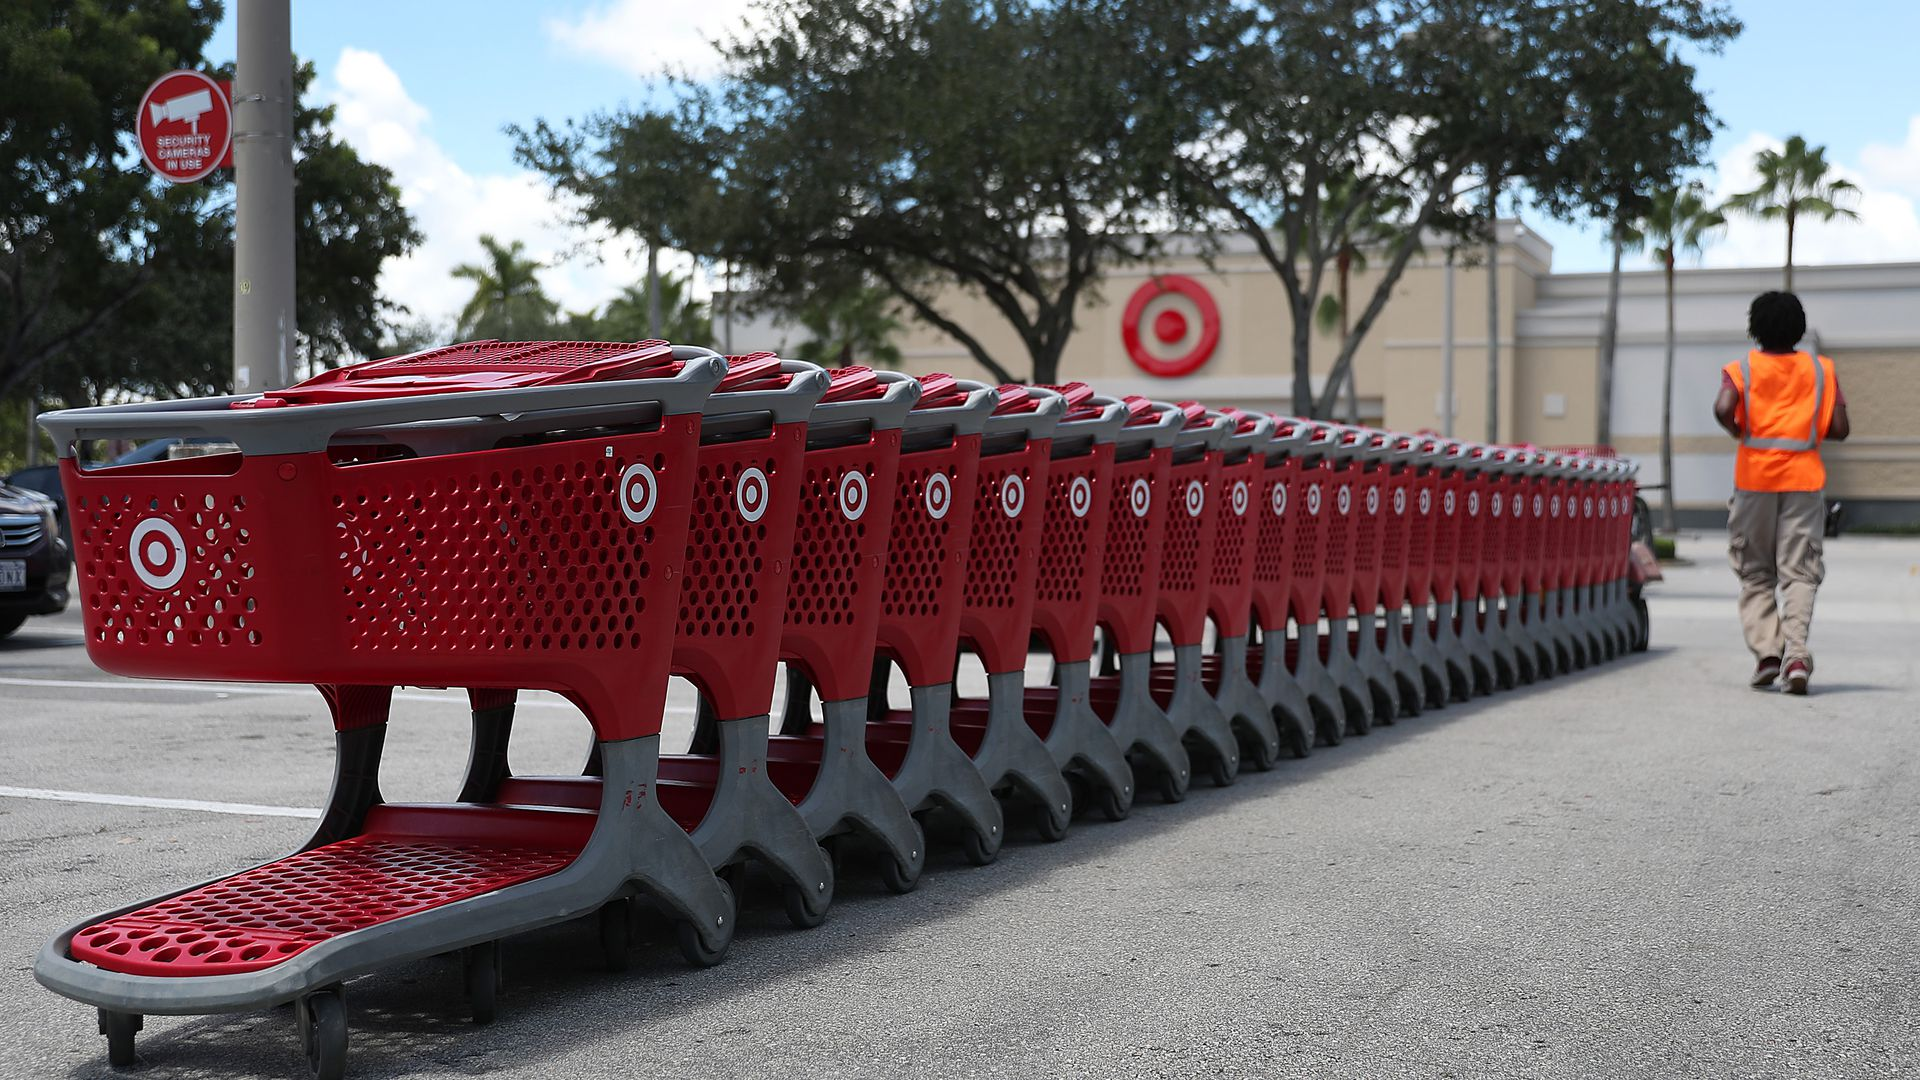 In this image, a Target employee in an orange vest stands next to a line of Target shopping carts.